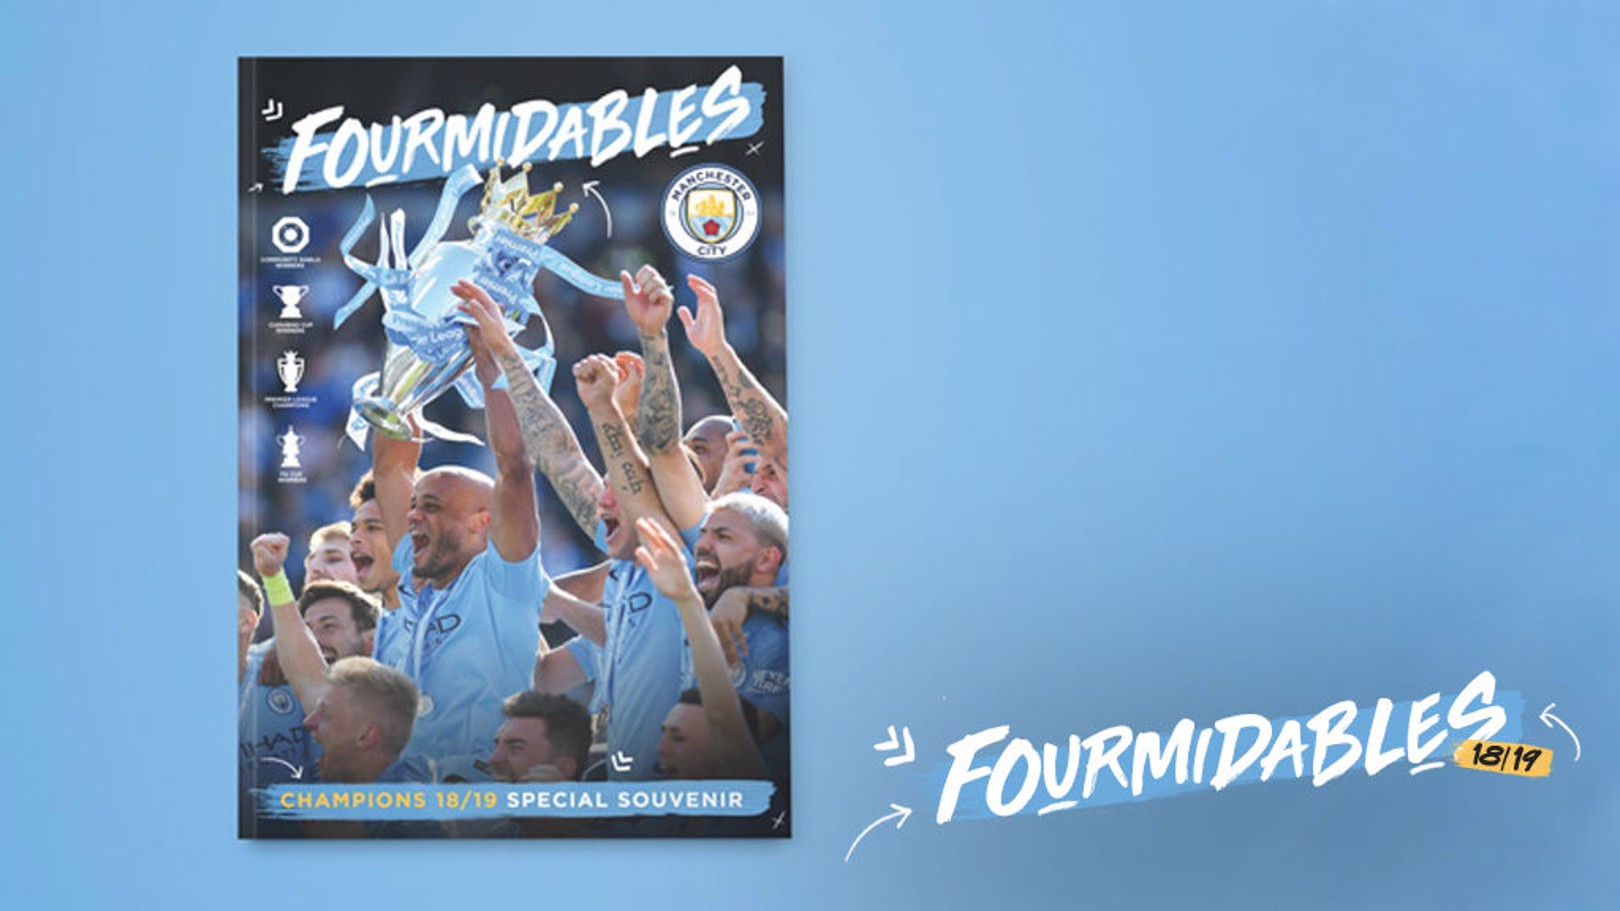 FOURMIDABLES: Champions magazine now on sale!